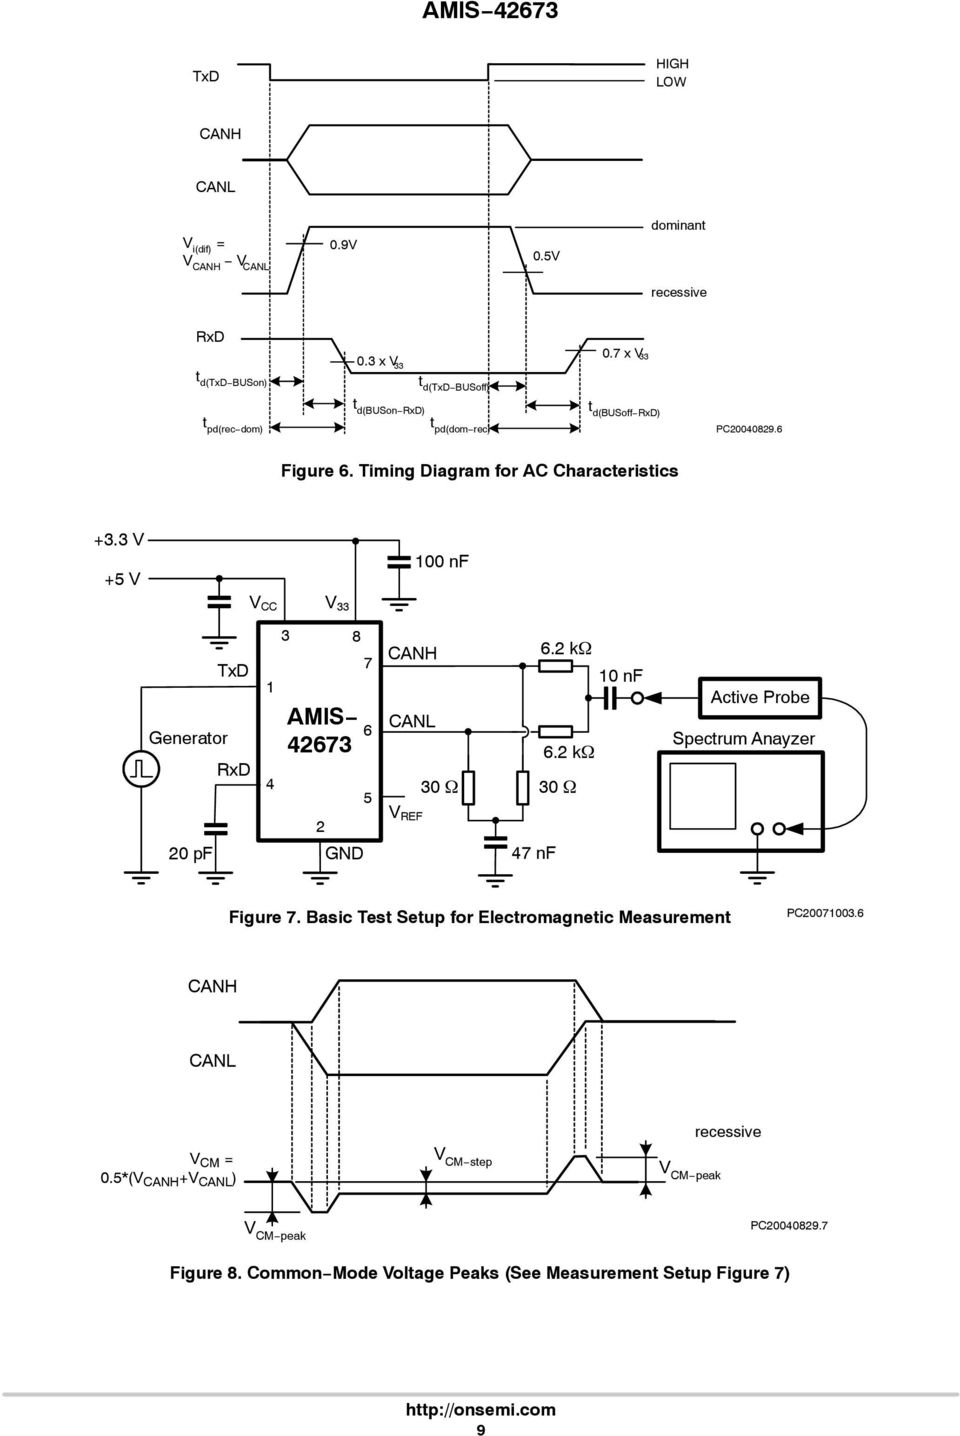 Timing Diagram for AC Characteristics +3.3 V + V 00 nf Generator 3 8 AMIS 43. k 0 nf.